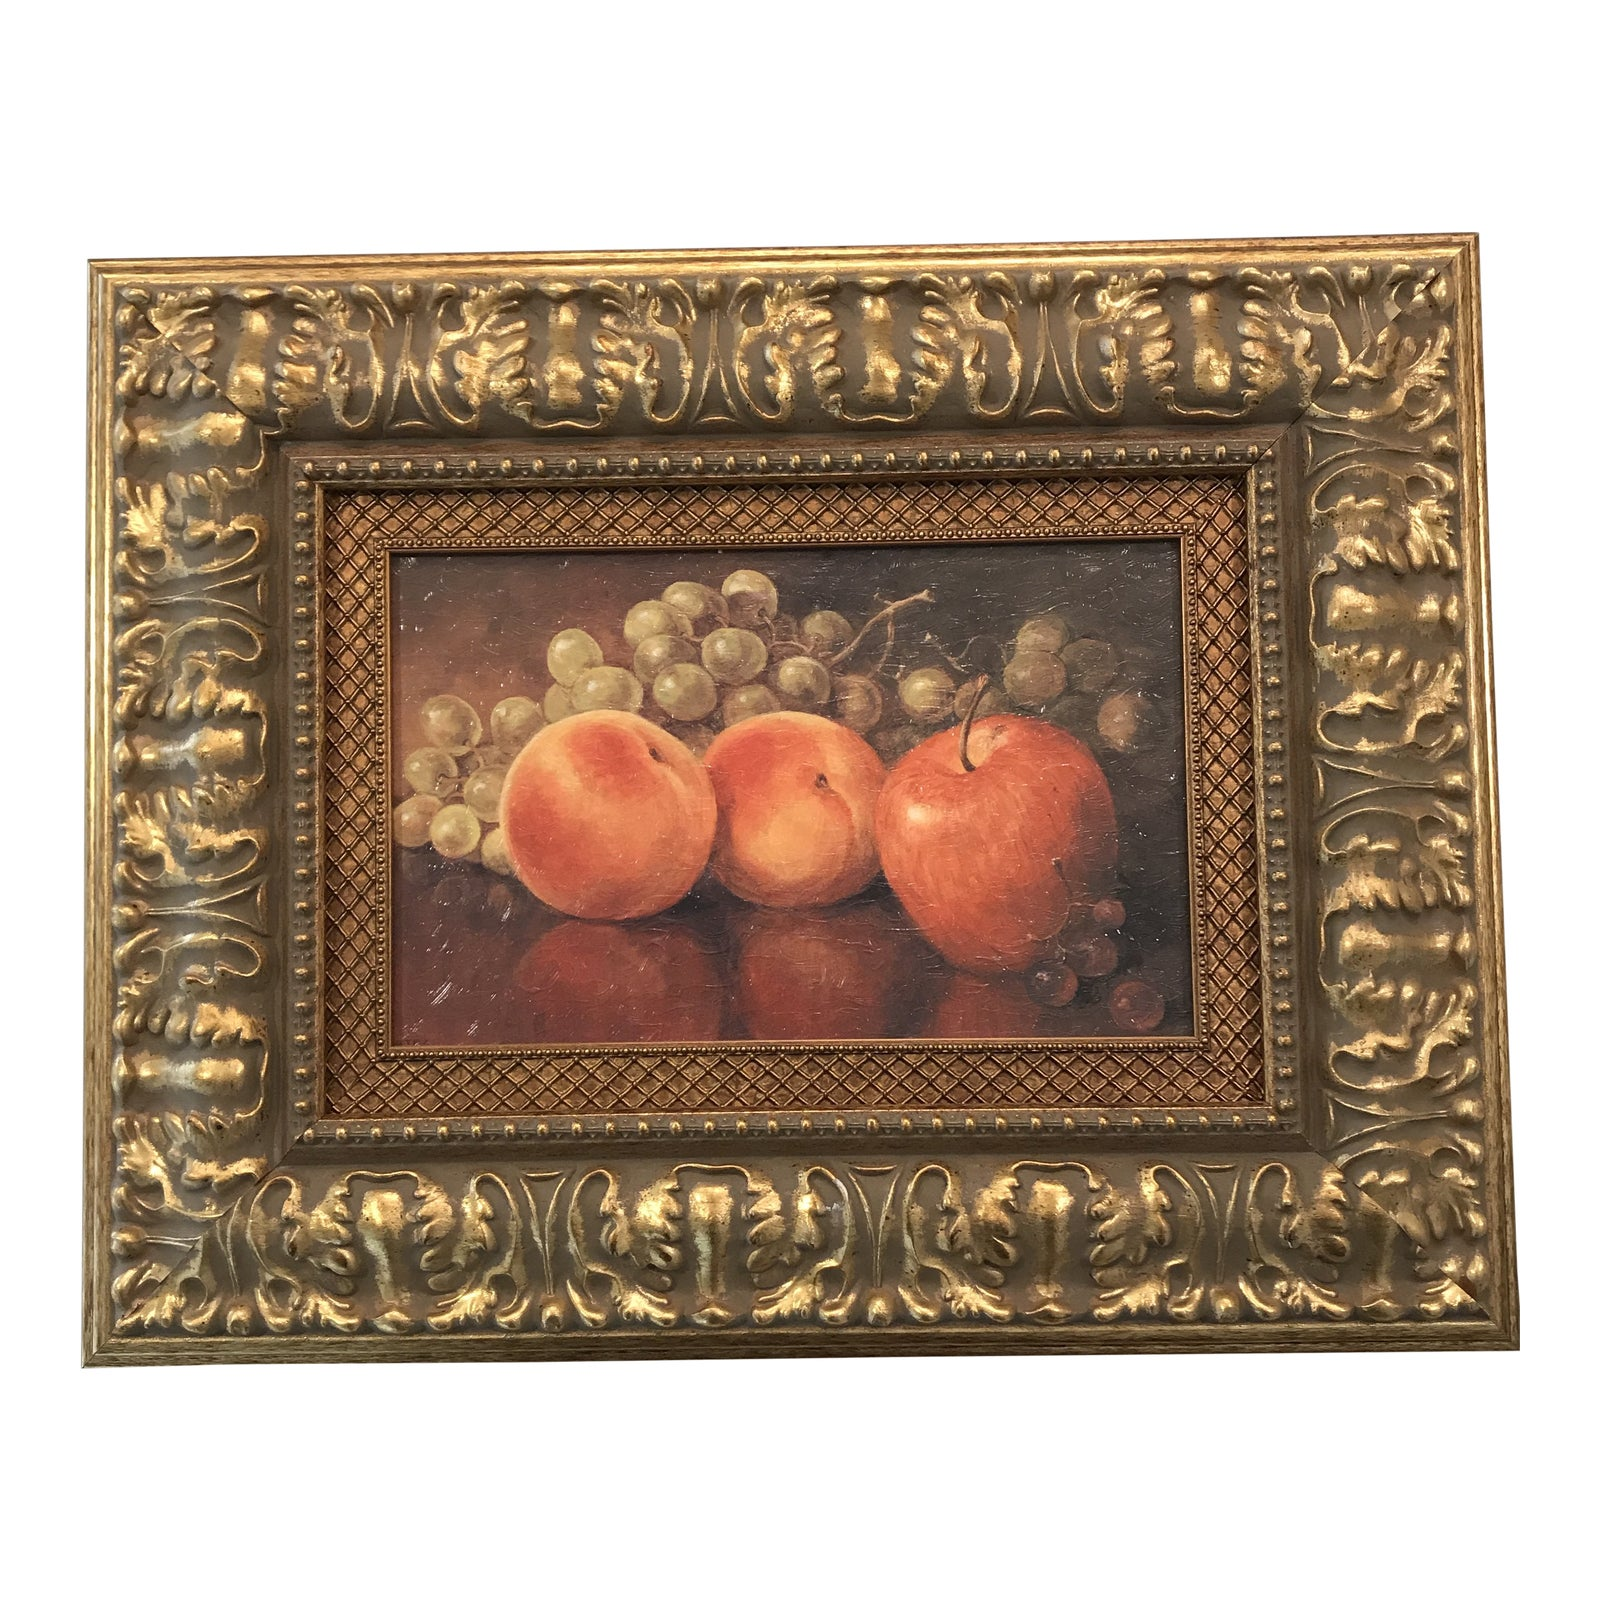 Still Life Kitchen Wall Decor Framed Picture Grapes and Apples Wine /& Fruit